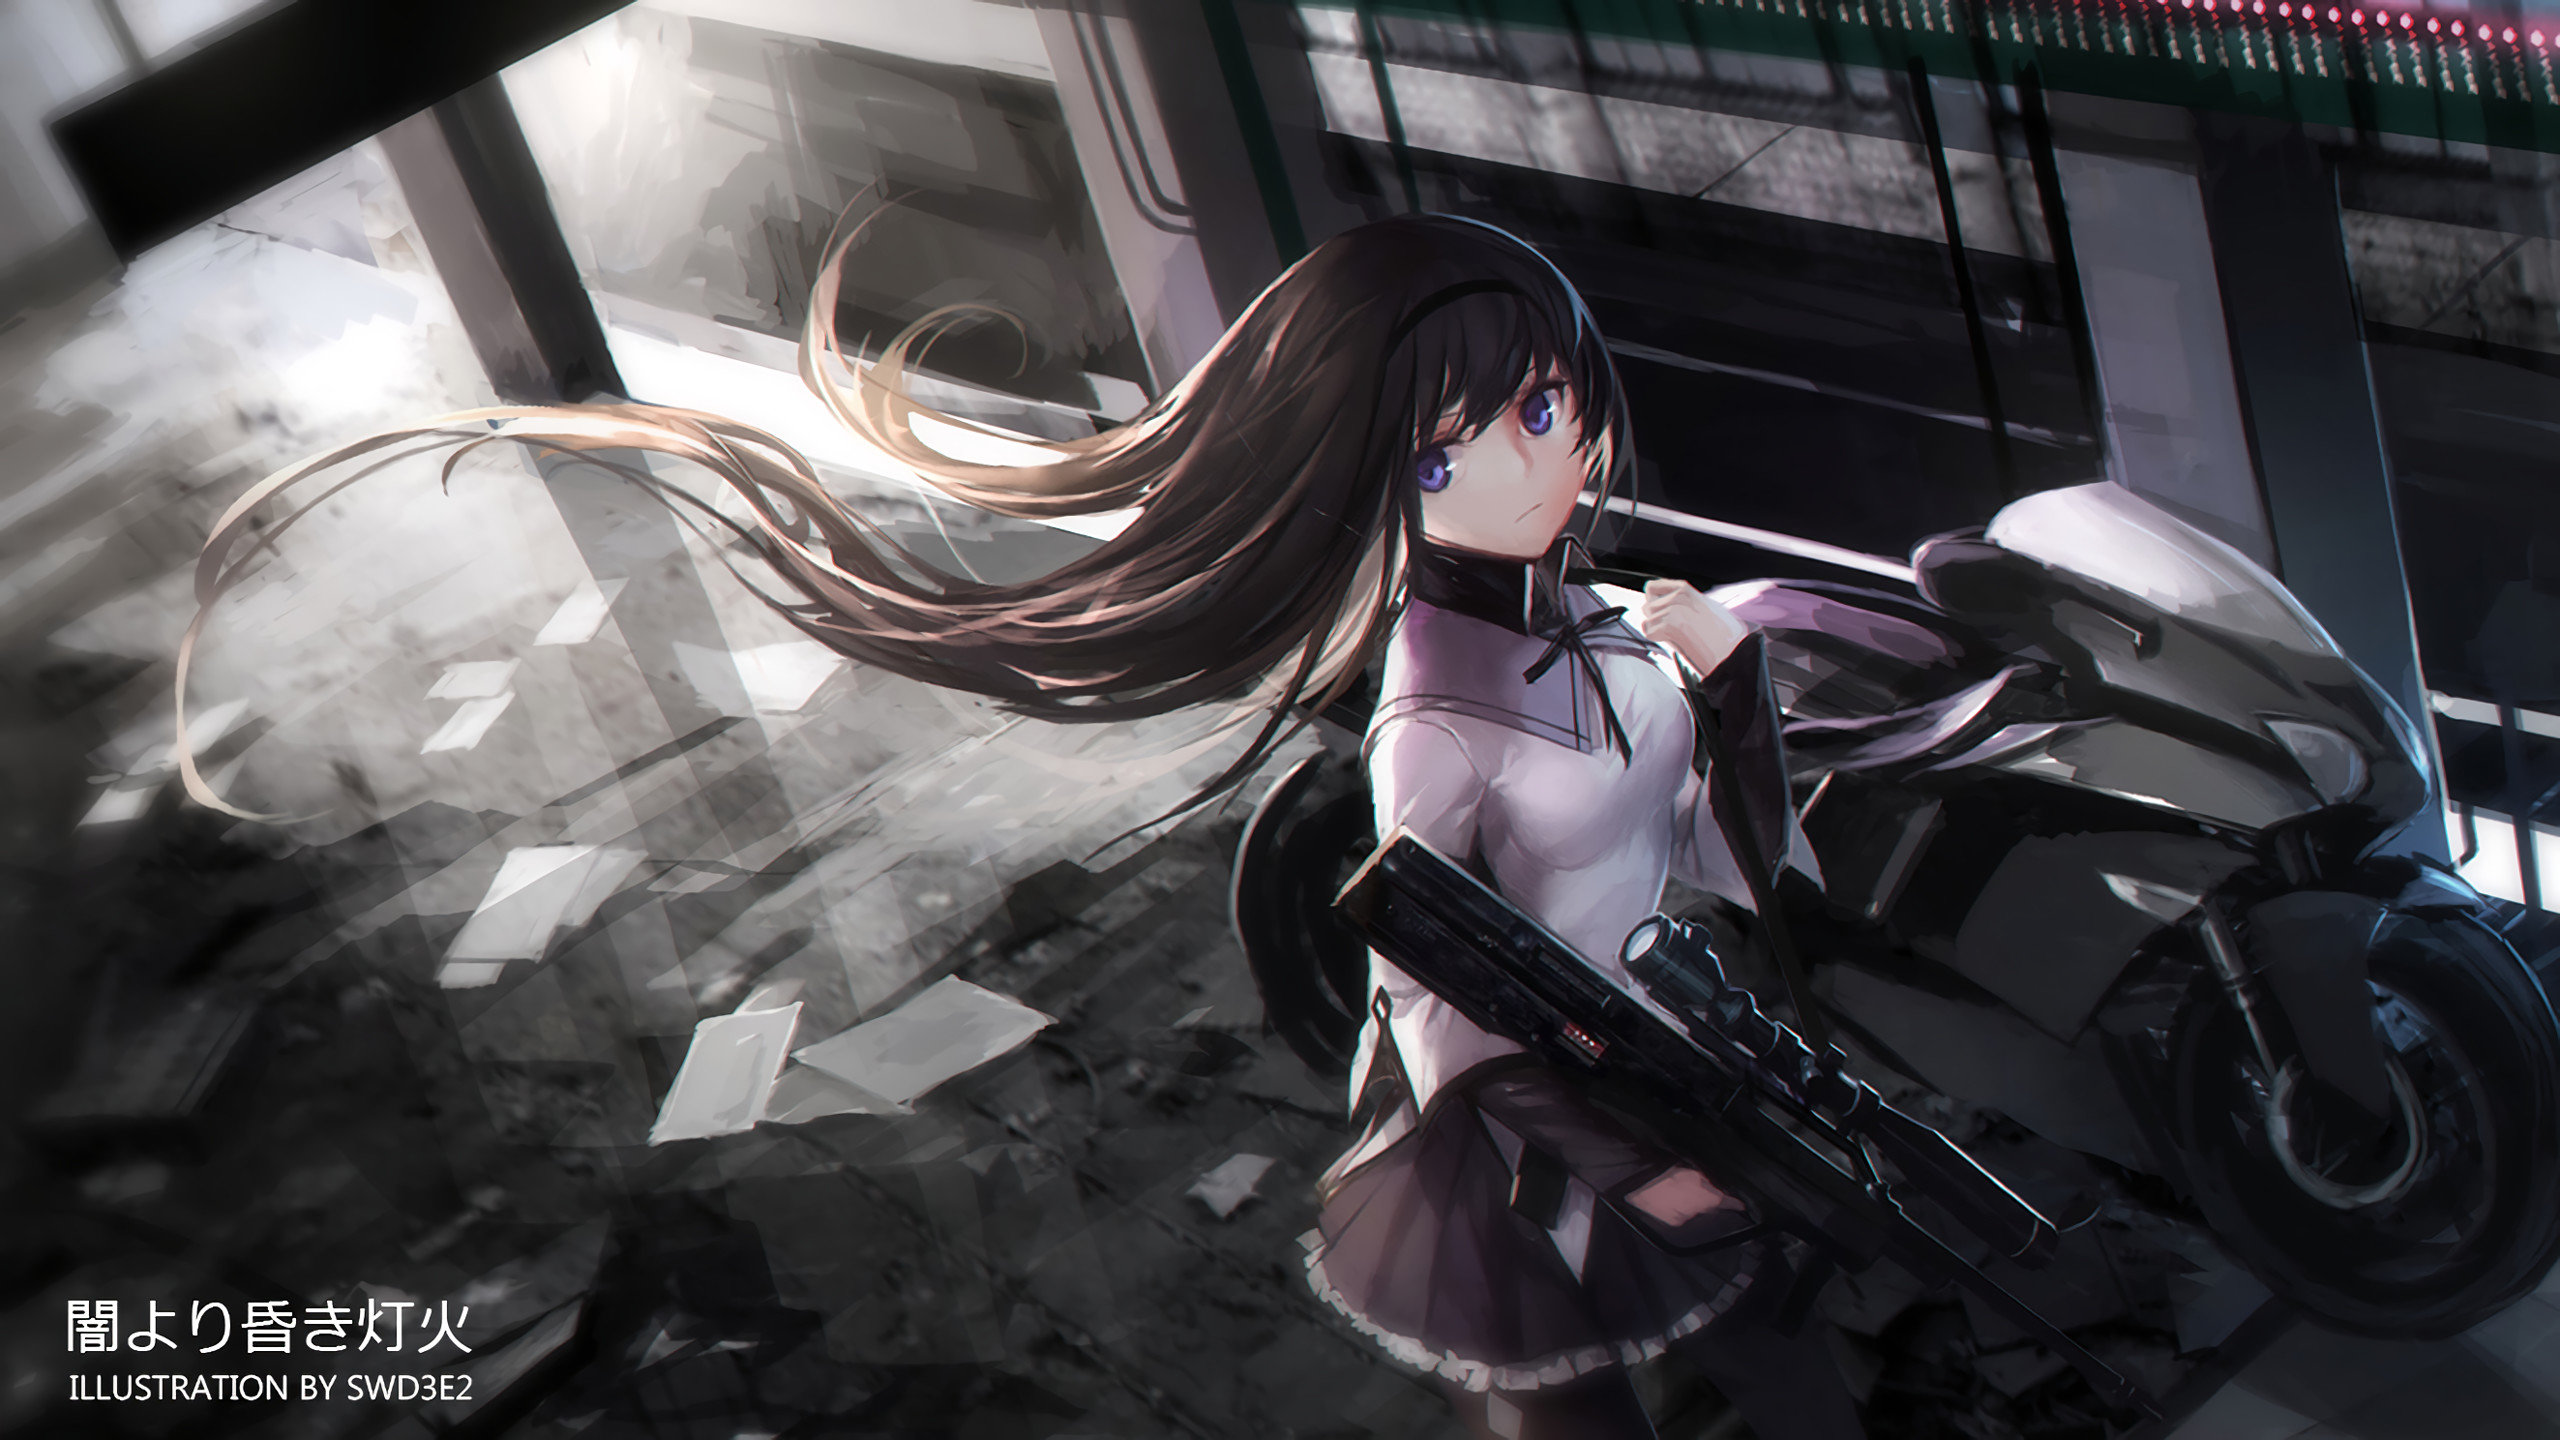 Download hd 2560x1440 Homura Akemi PC background ID:31508 for free